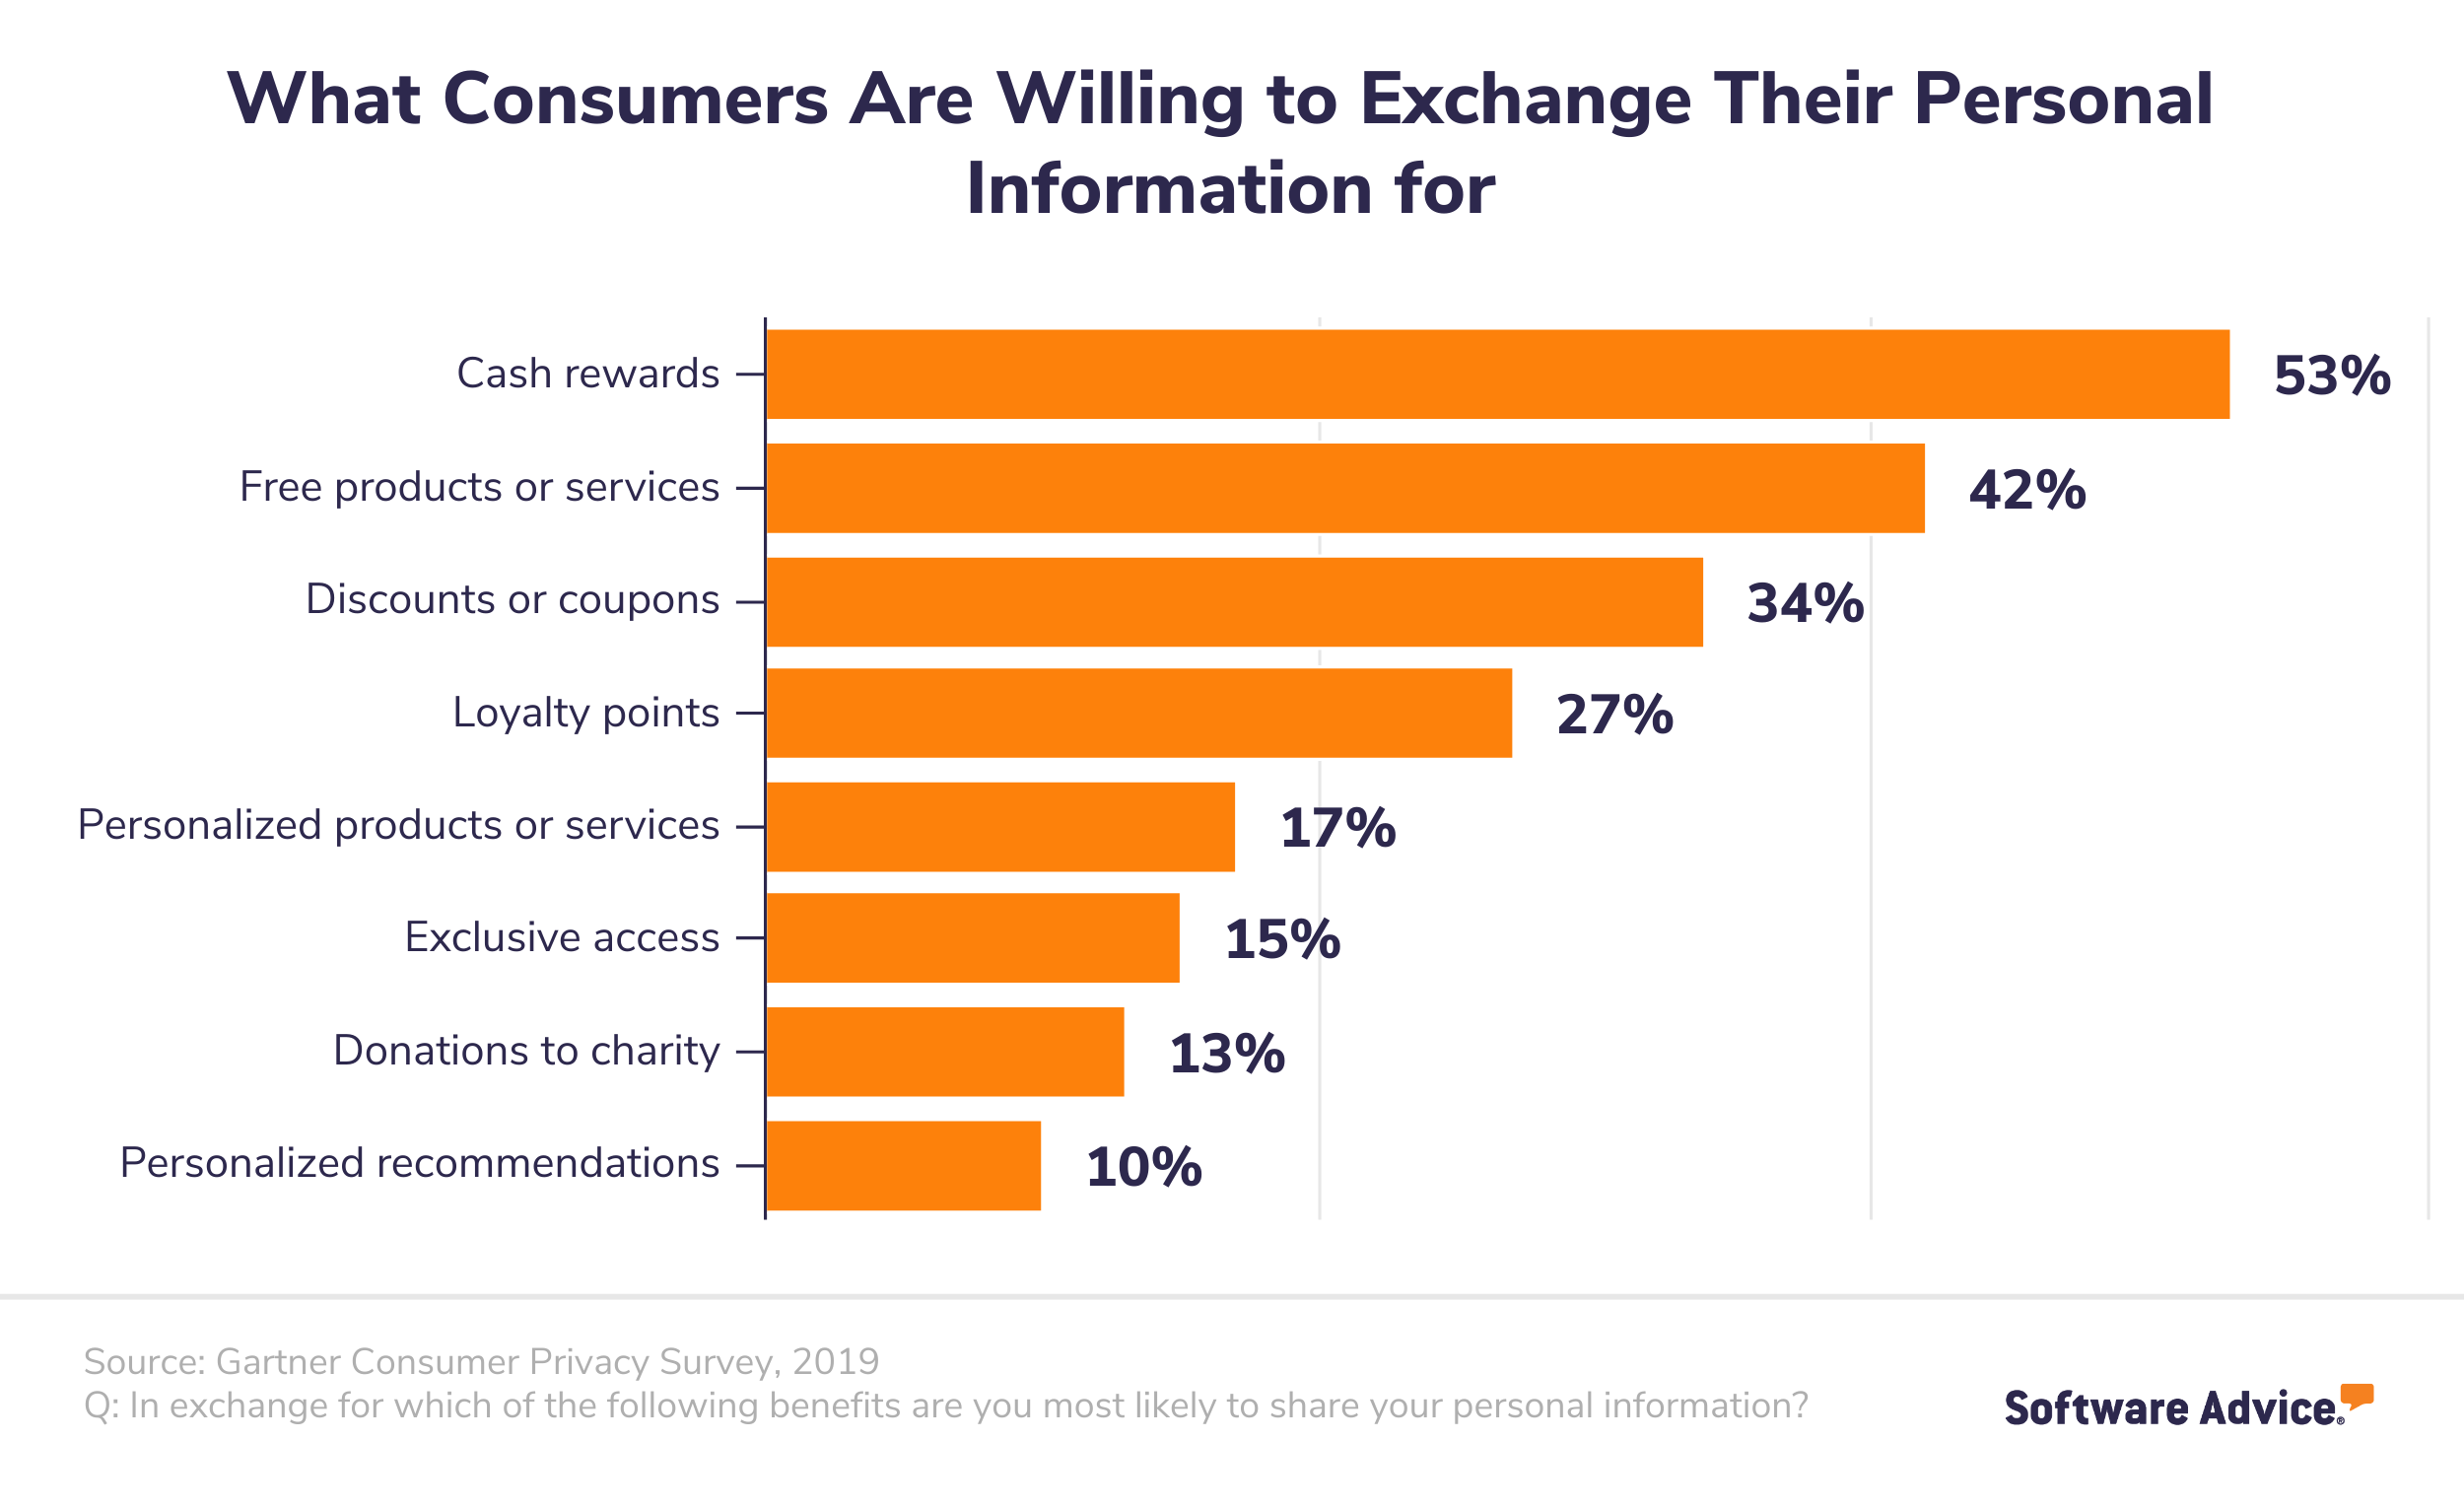 A bar chart showing what consumers are willing to exchange their personal information for